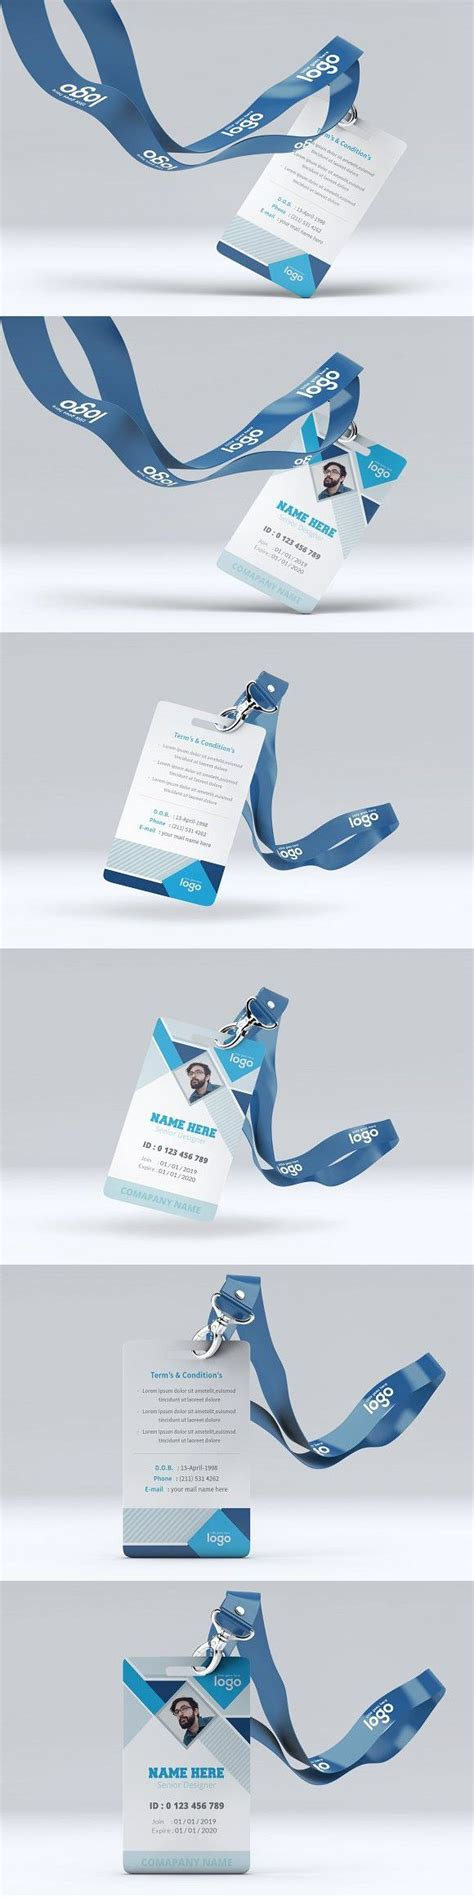 abstract id card template  images id card template